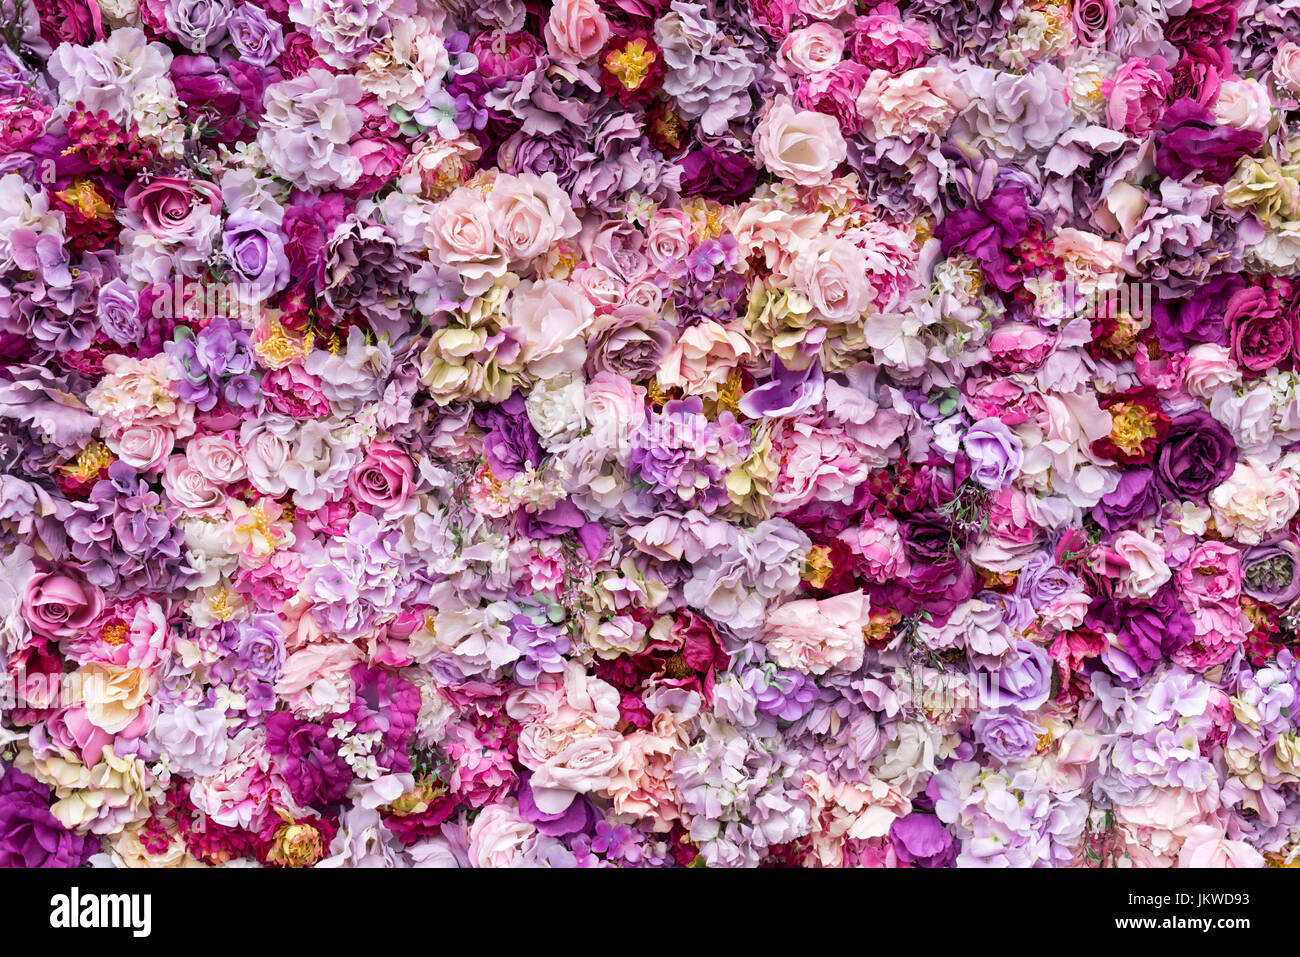 Flower texture background for wedding scene. Roses, peonies and hydrangeas, artificial flowers on the wall. - Stock Image